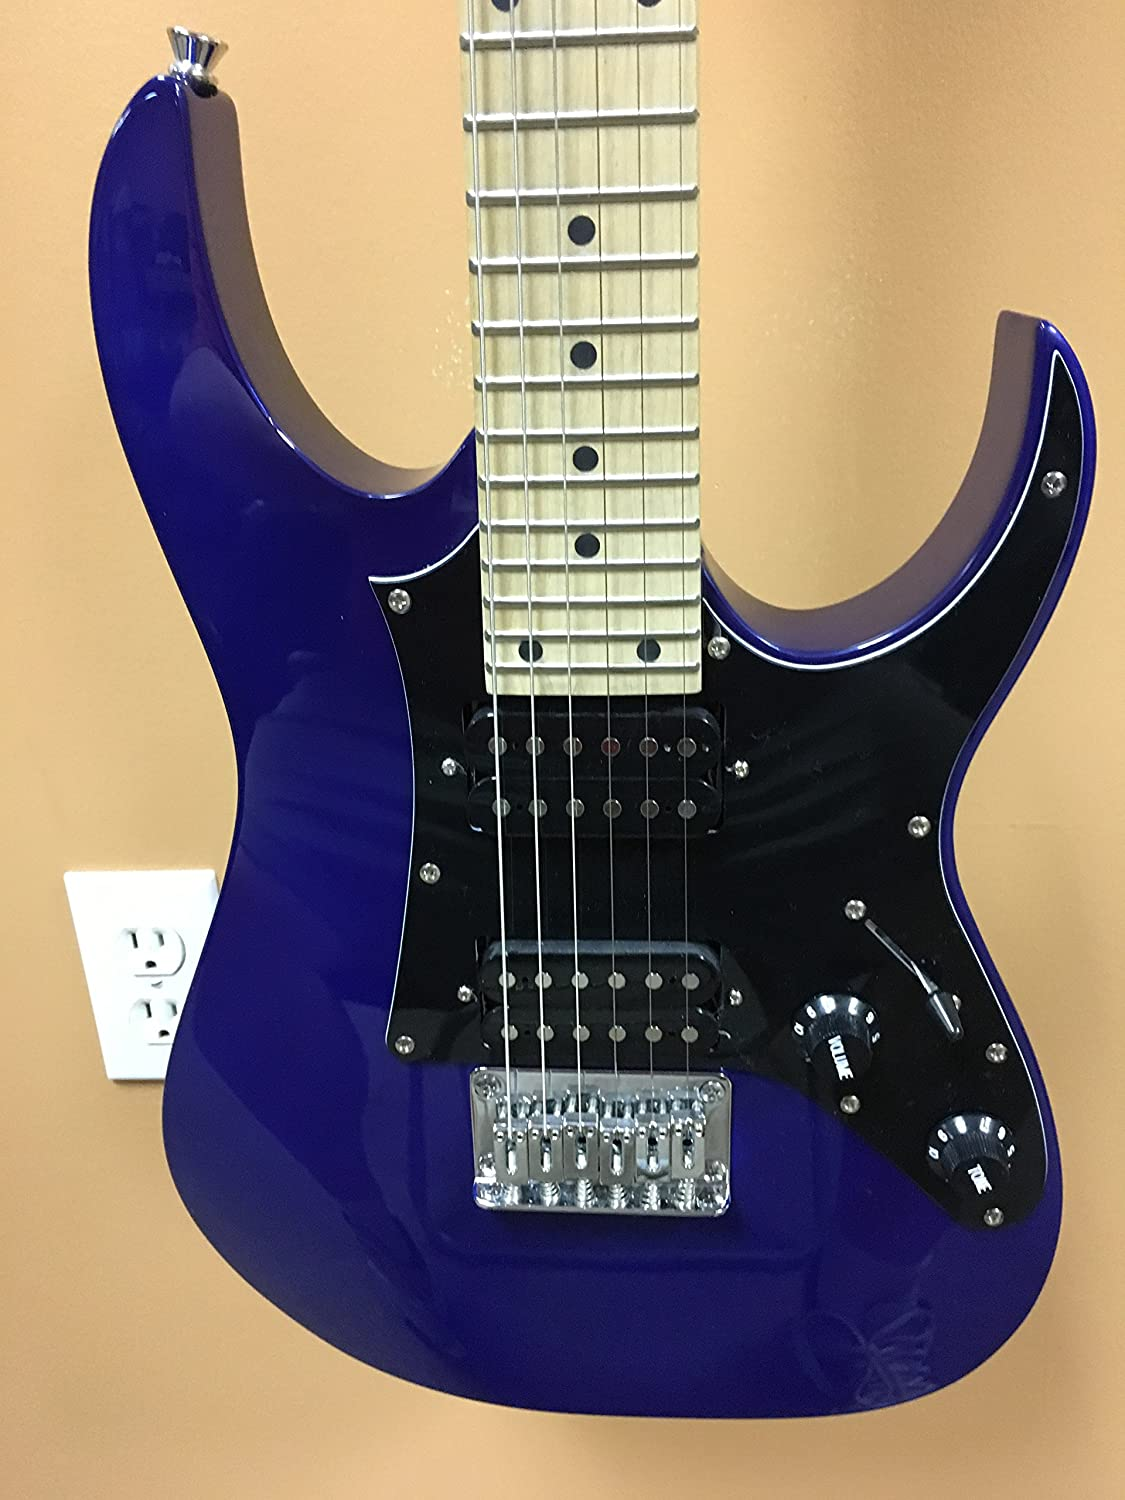 Ibanez 6 String Solid-Body Electric Guitar, Right, Jewel Blue